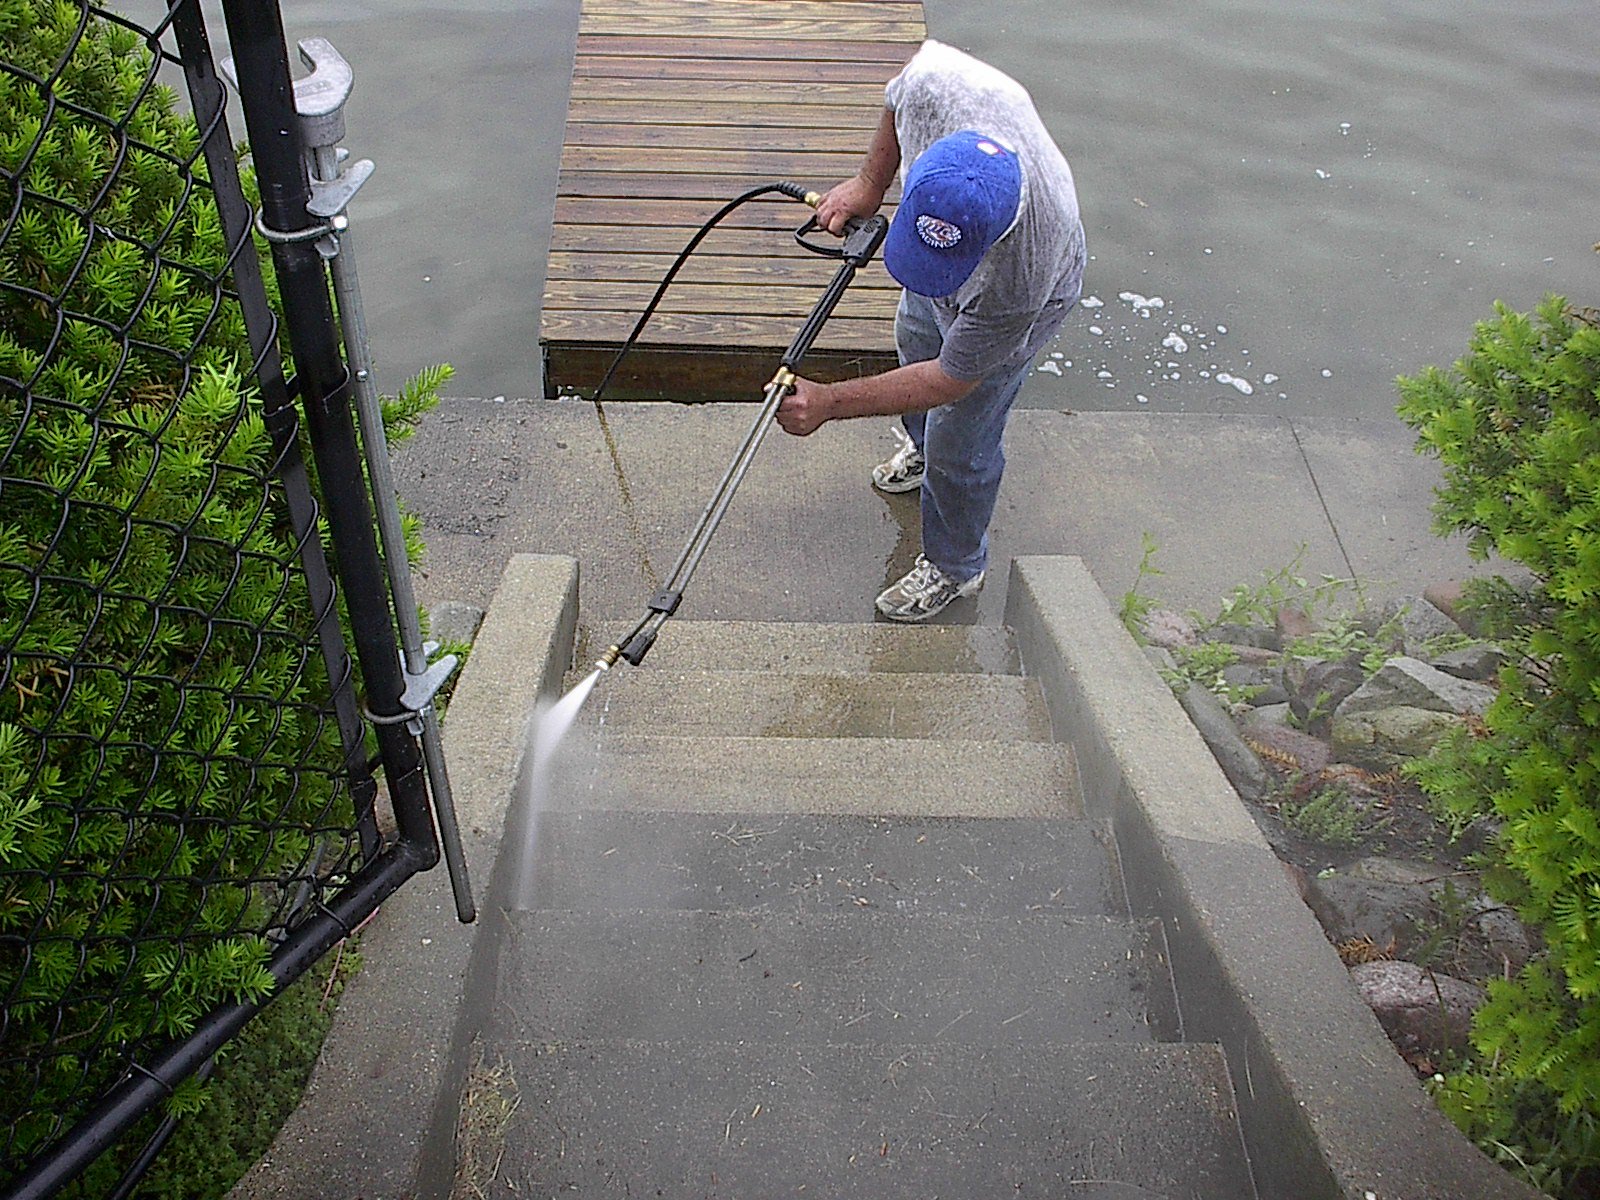 When curb appeal is the goal, start from the ground! Home Team Power Clean is Michigan's supplier of driveway and sidewalk cleaning services that keep your property on point.